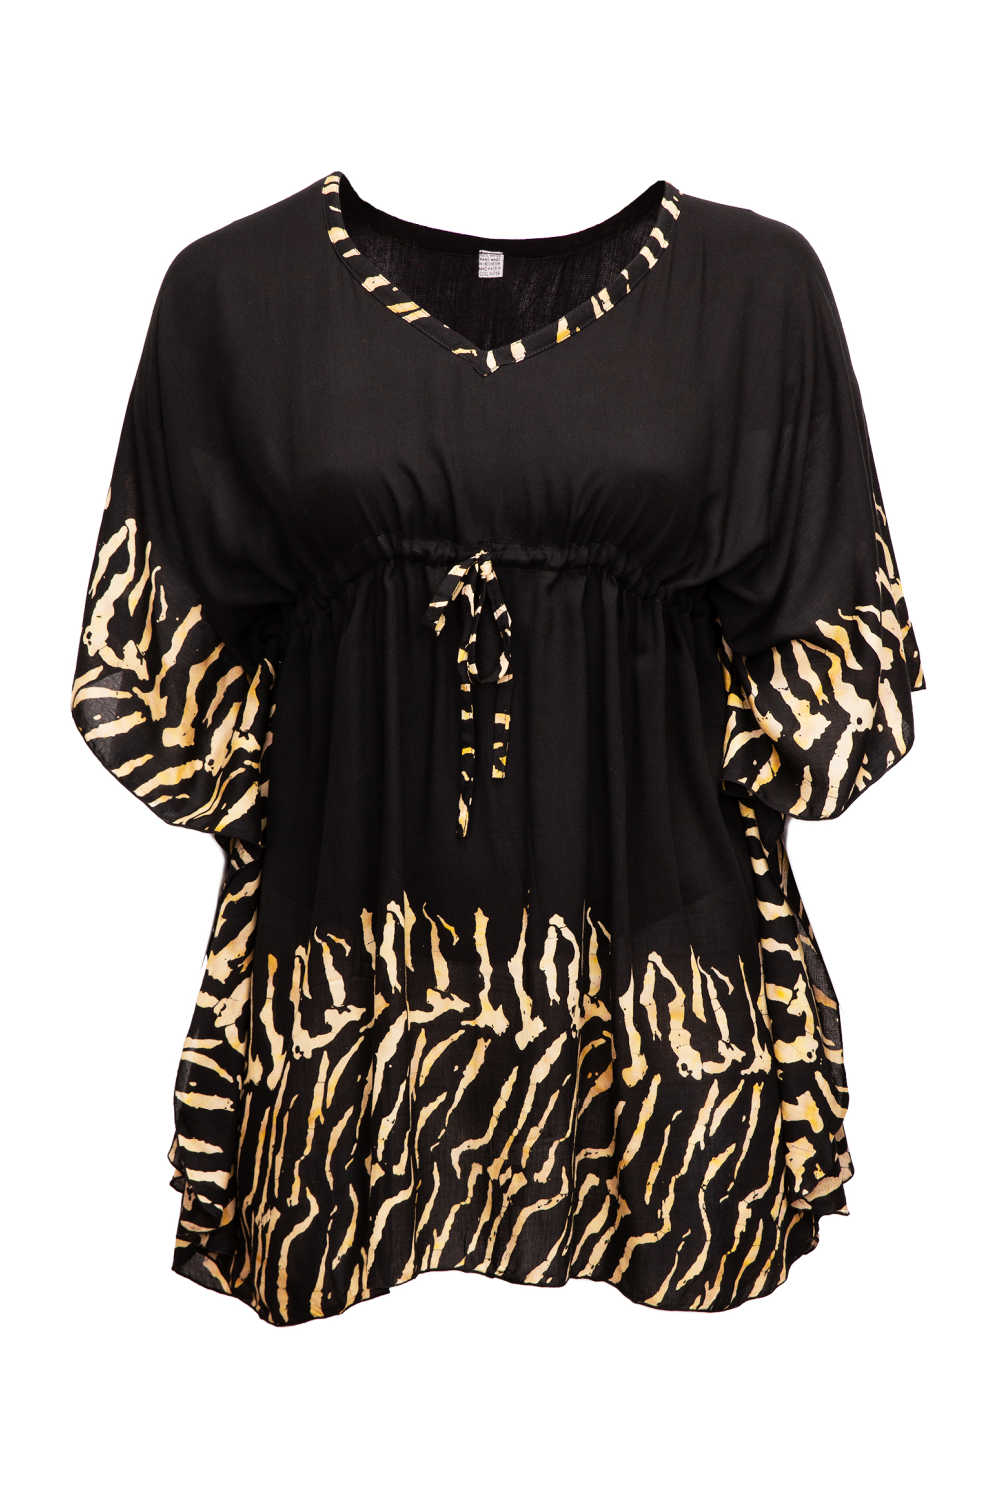 zebra-print-kaftan-top-black-caramel-brown